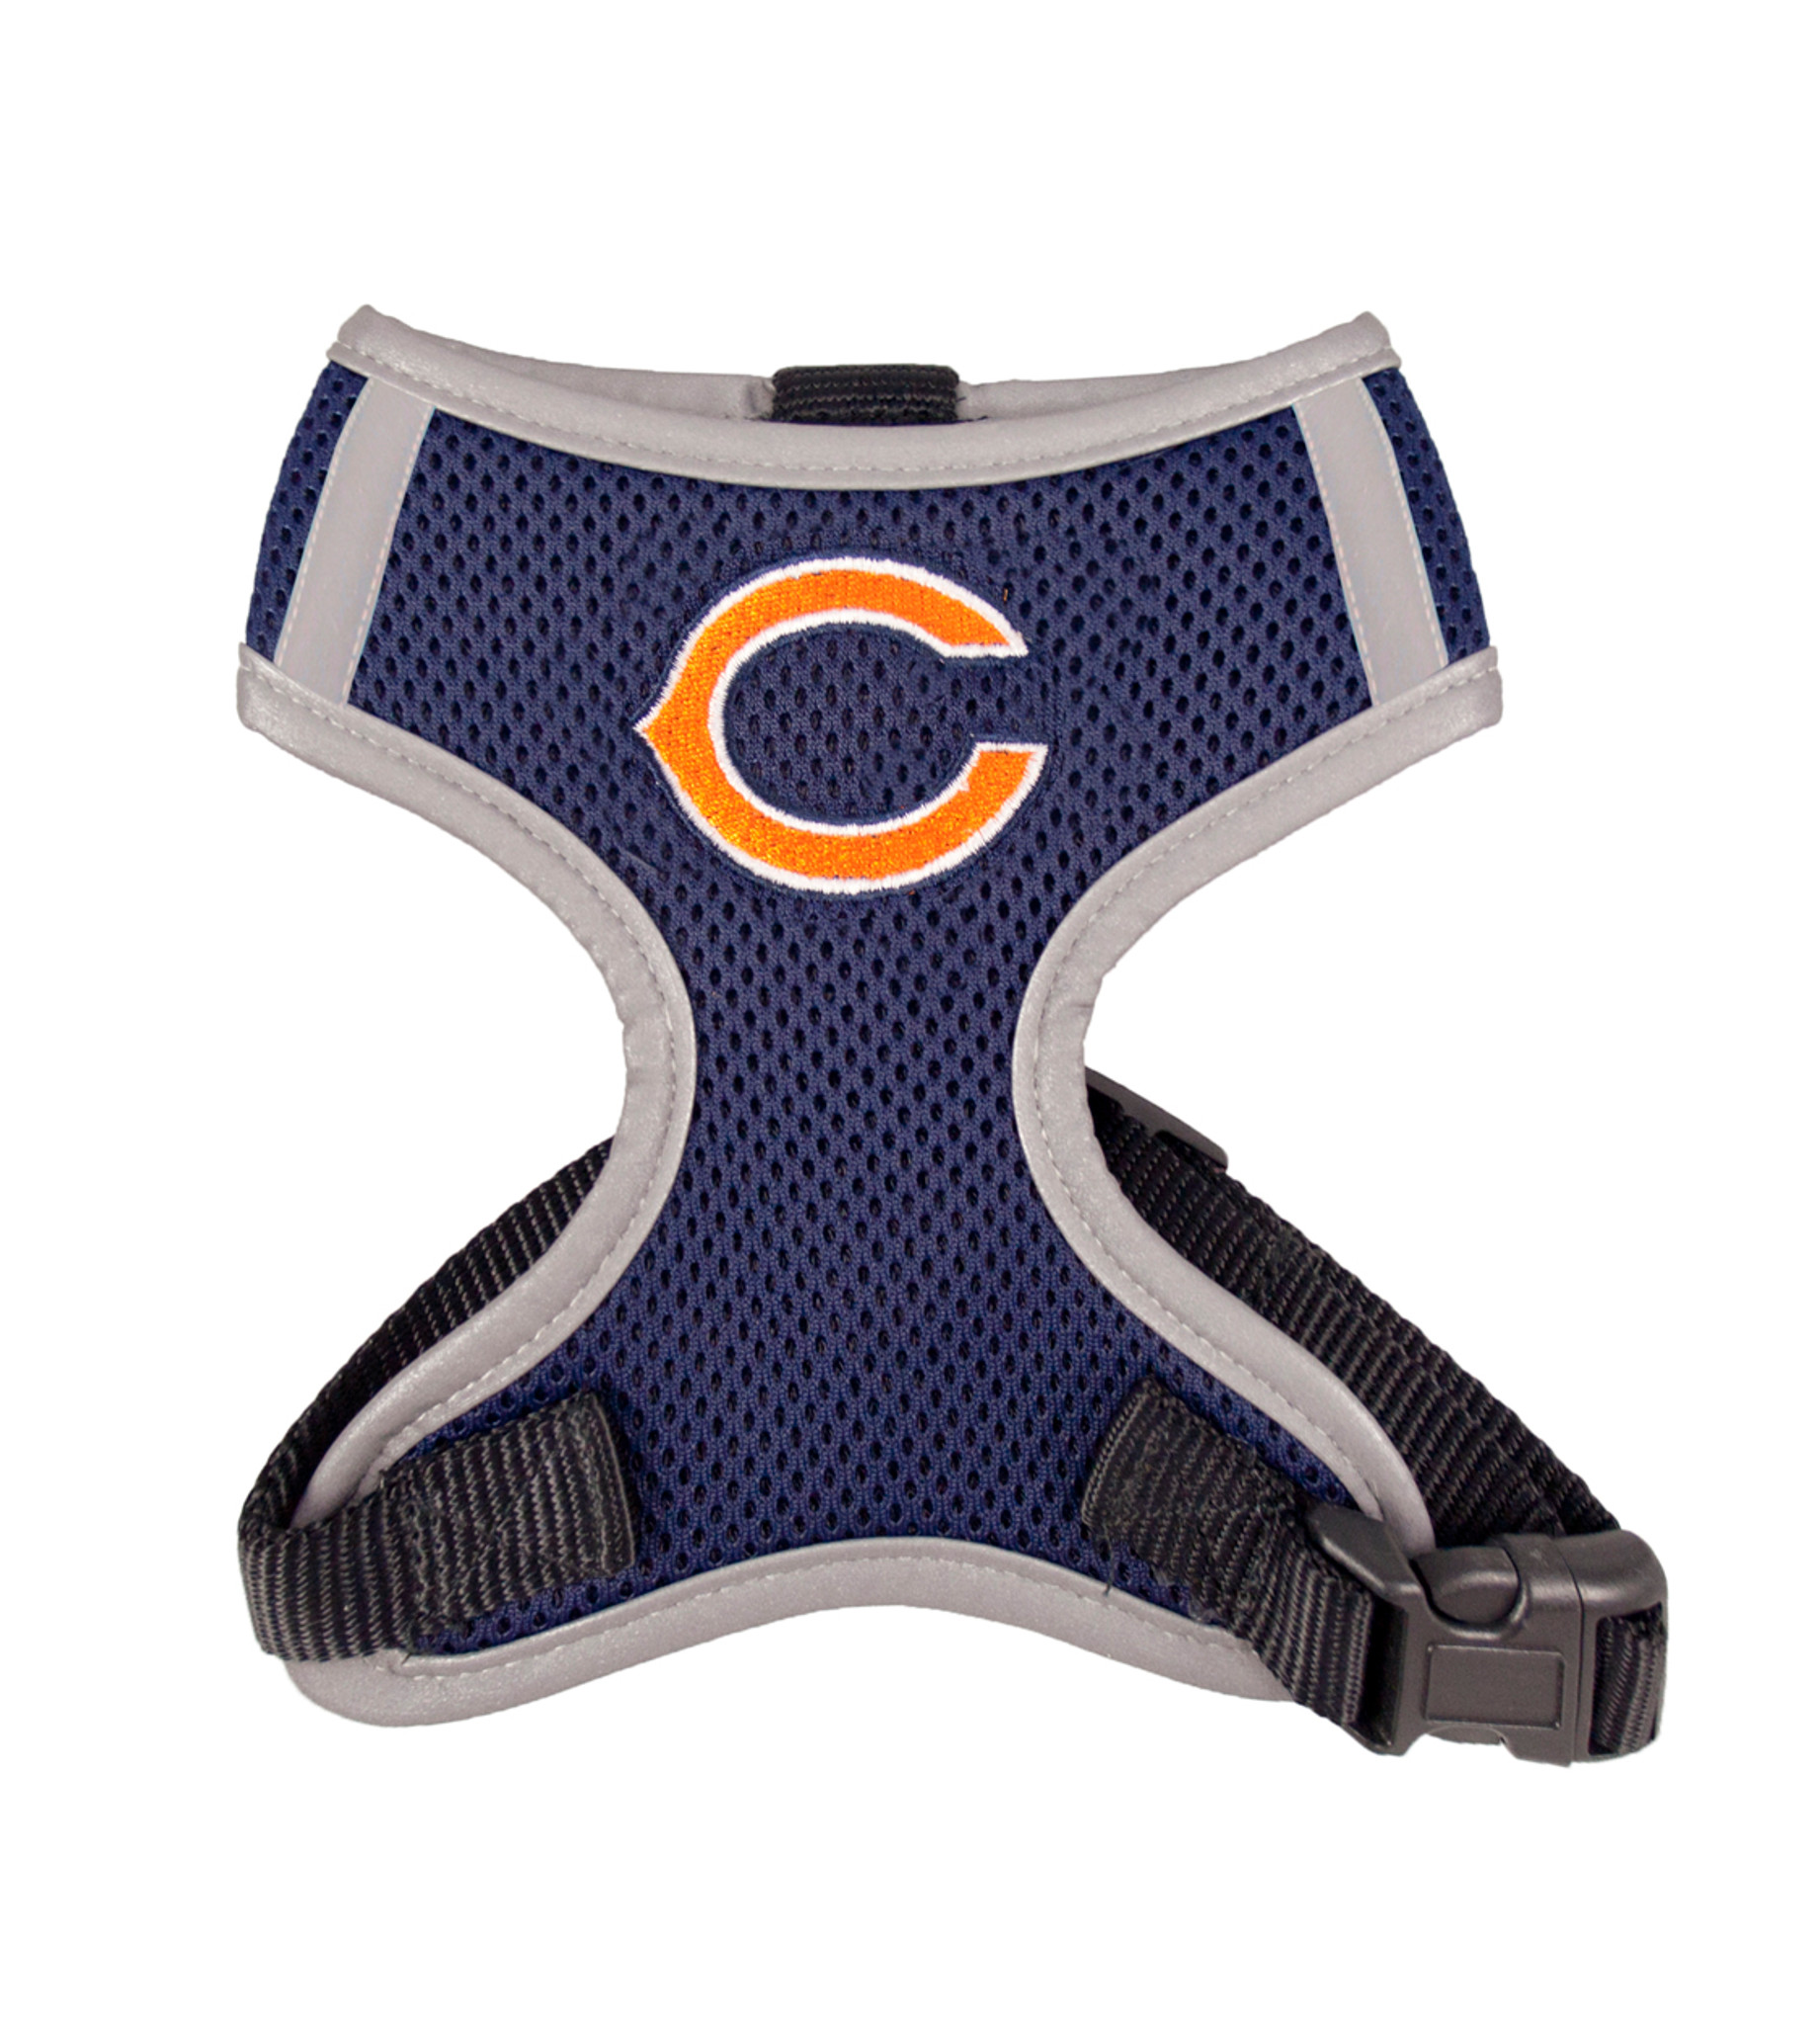 reputable site a5ac1 851a5 NFL Chicago Bears Dog Harness Vest